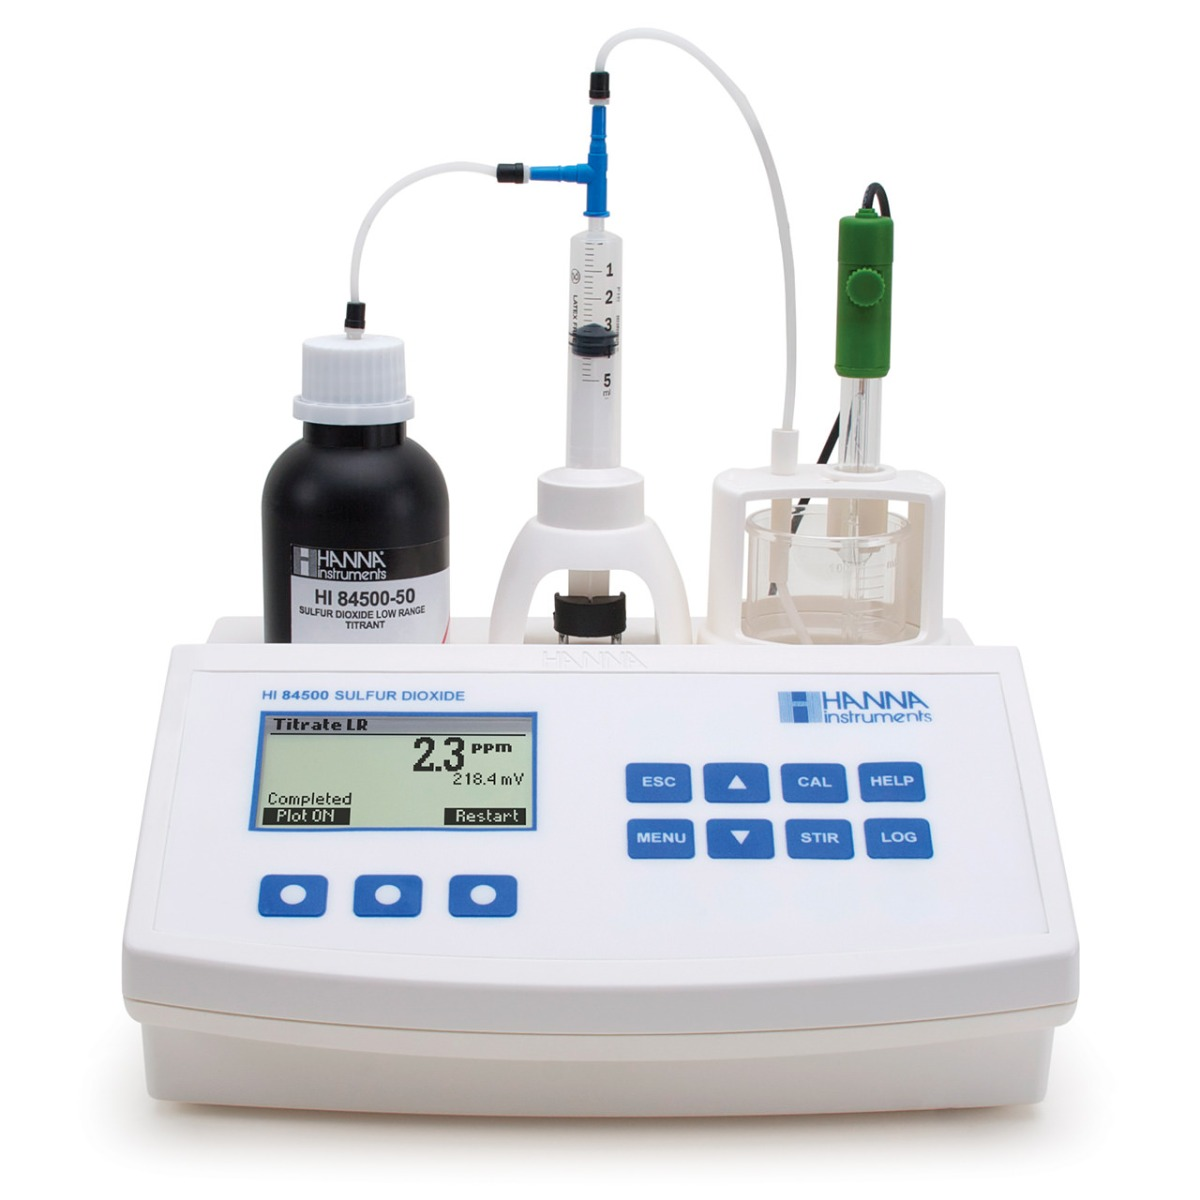 Mini Titrator for Measuring Sulfur Dioxide in Wine - HI84500